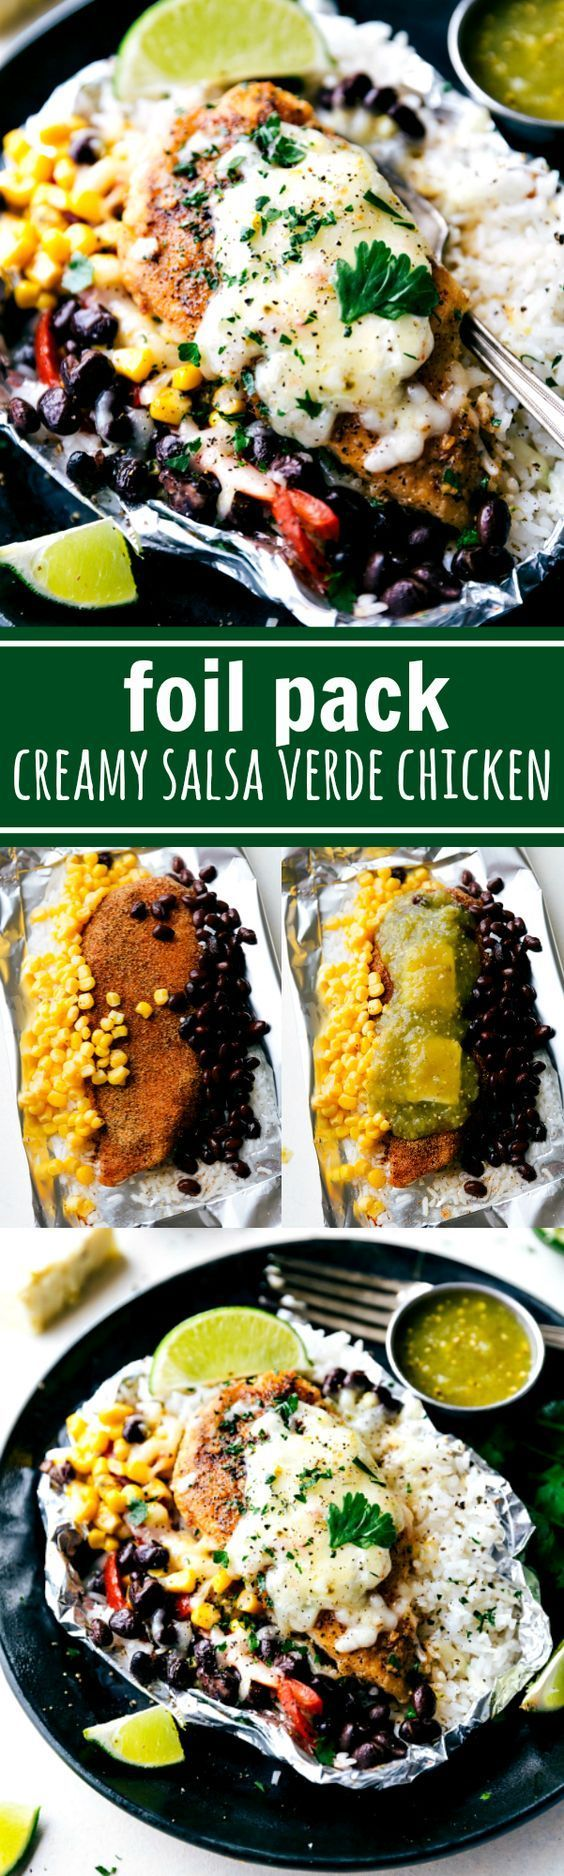 EASY FOIL PACKET Creamy salsa verde chicken with rice and veggies all cooked at once in a foil packet! No need to pre-cook the rice or chicken. This dish takes no more than 10 minutes to assemble and is bursting with delicious Mexican flavor! Also, make these packets into TACOS for another quick and easy dinner. Recipe from: chelseasmessyapro...